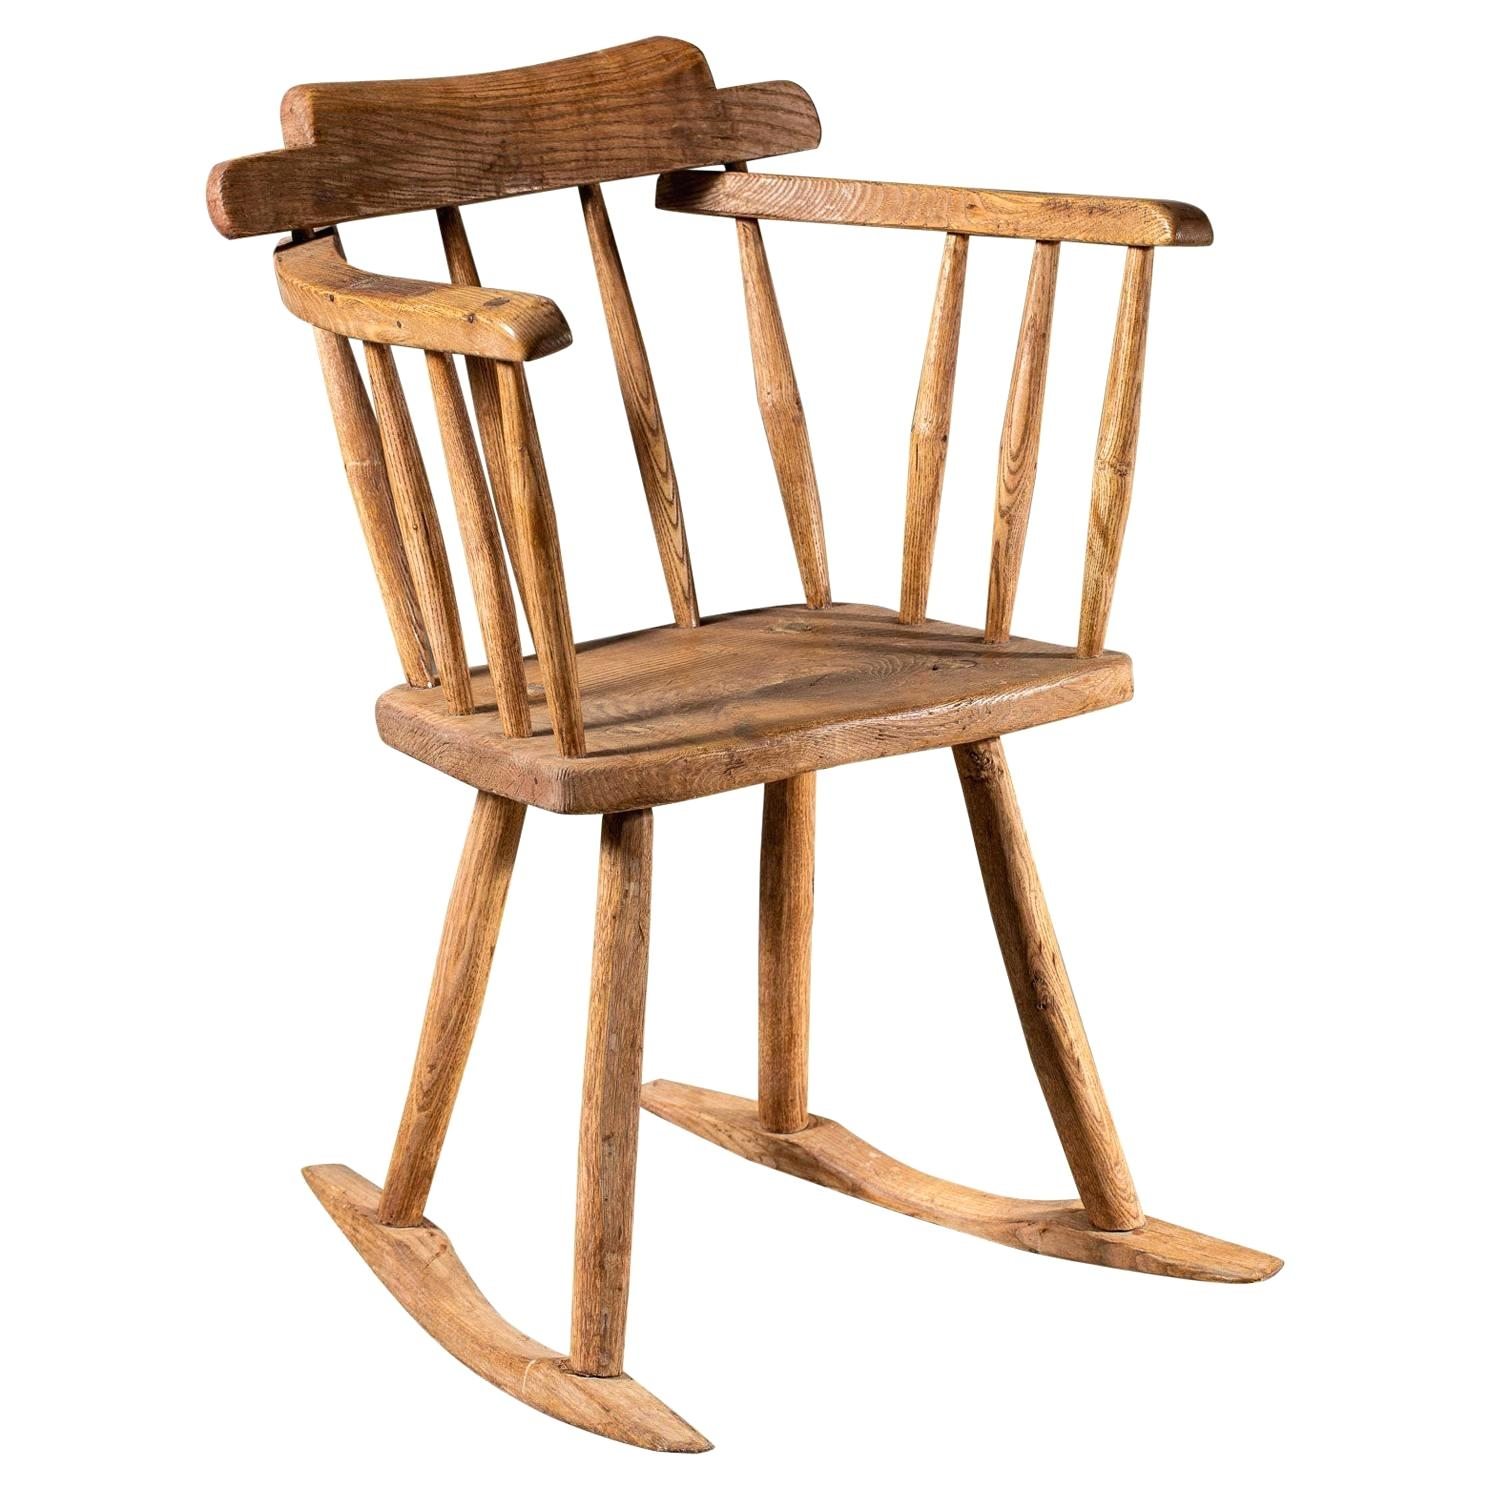 Oak Rocking Chairs For Sale – Constanceroe (View 11 of 20)